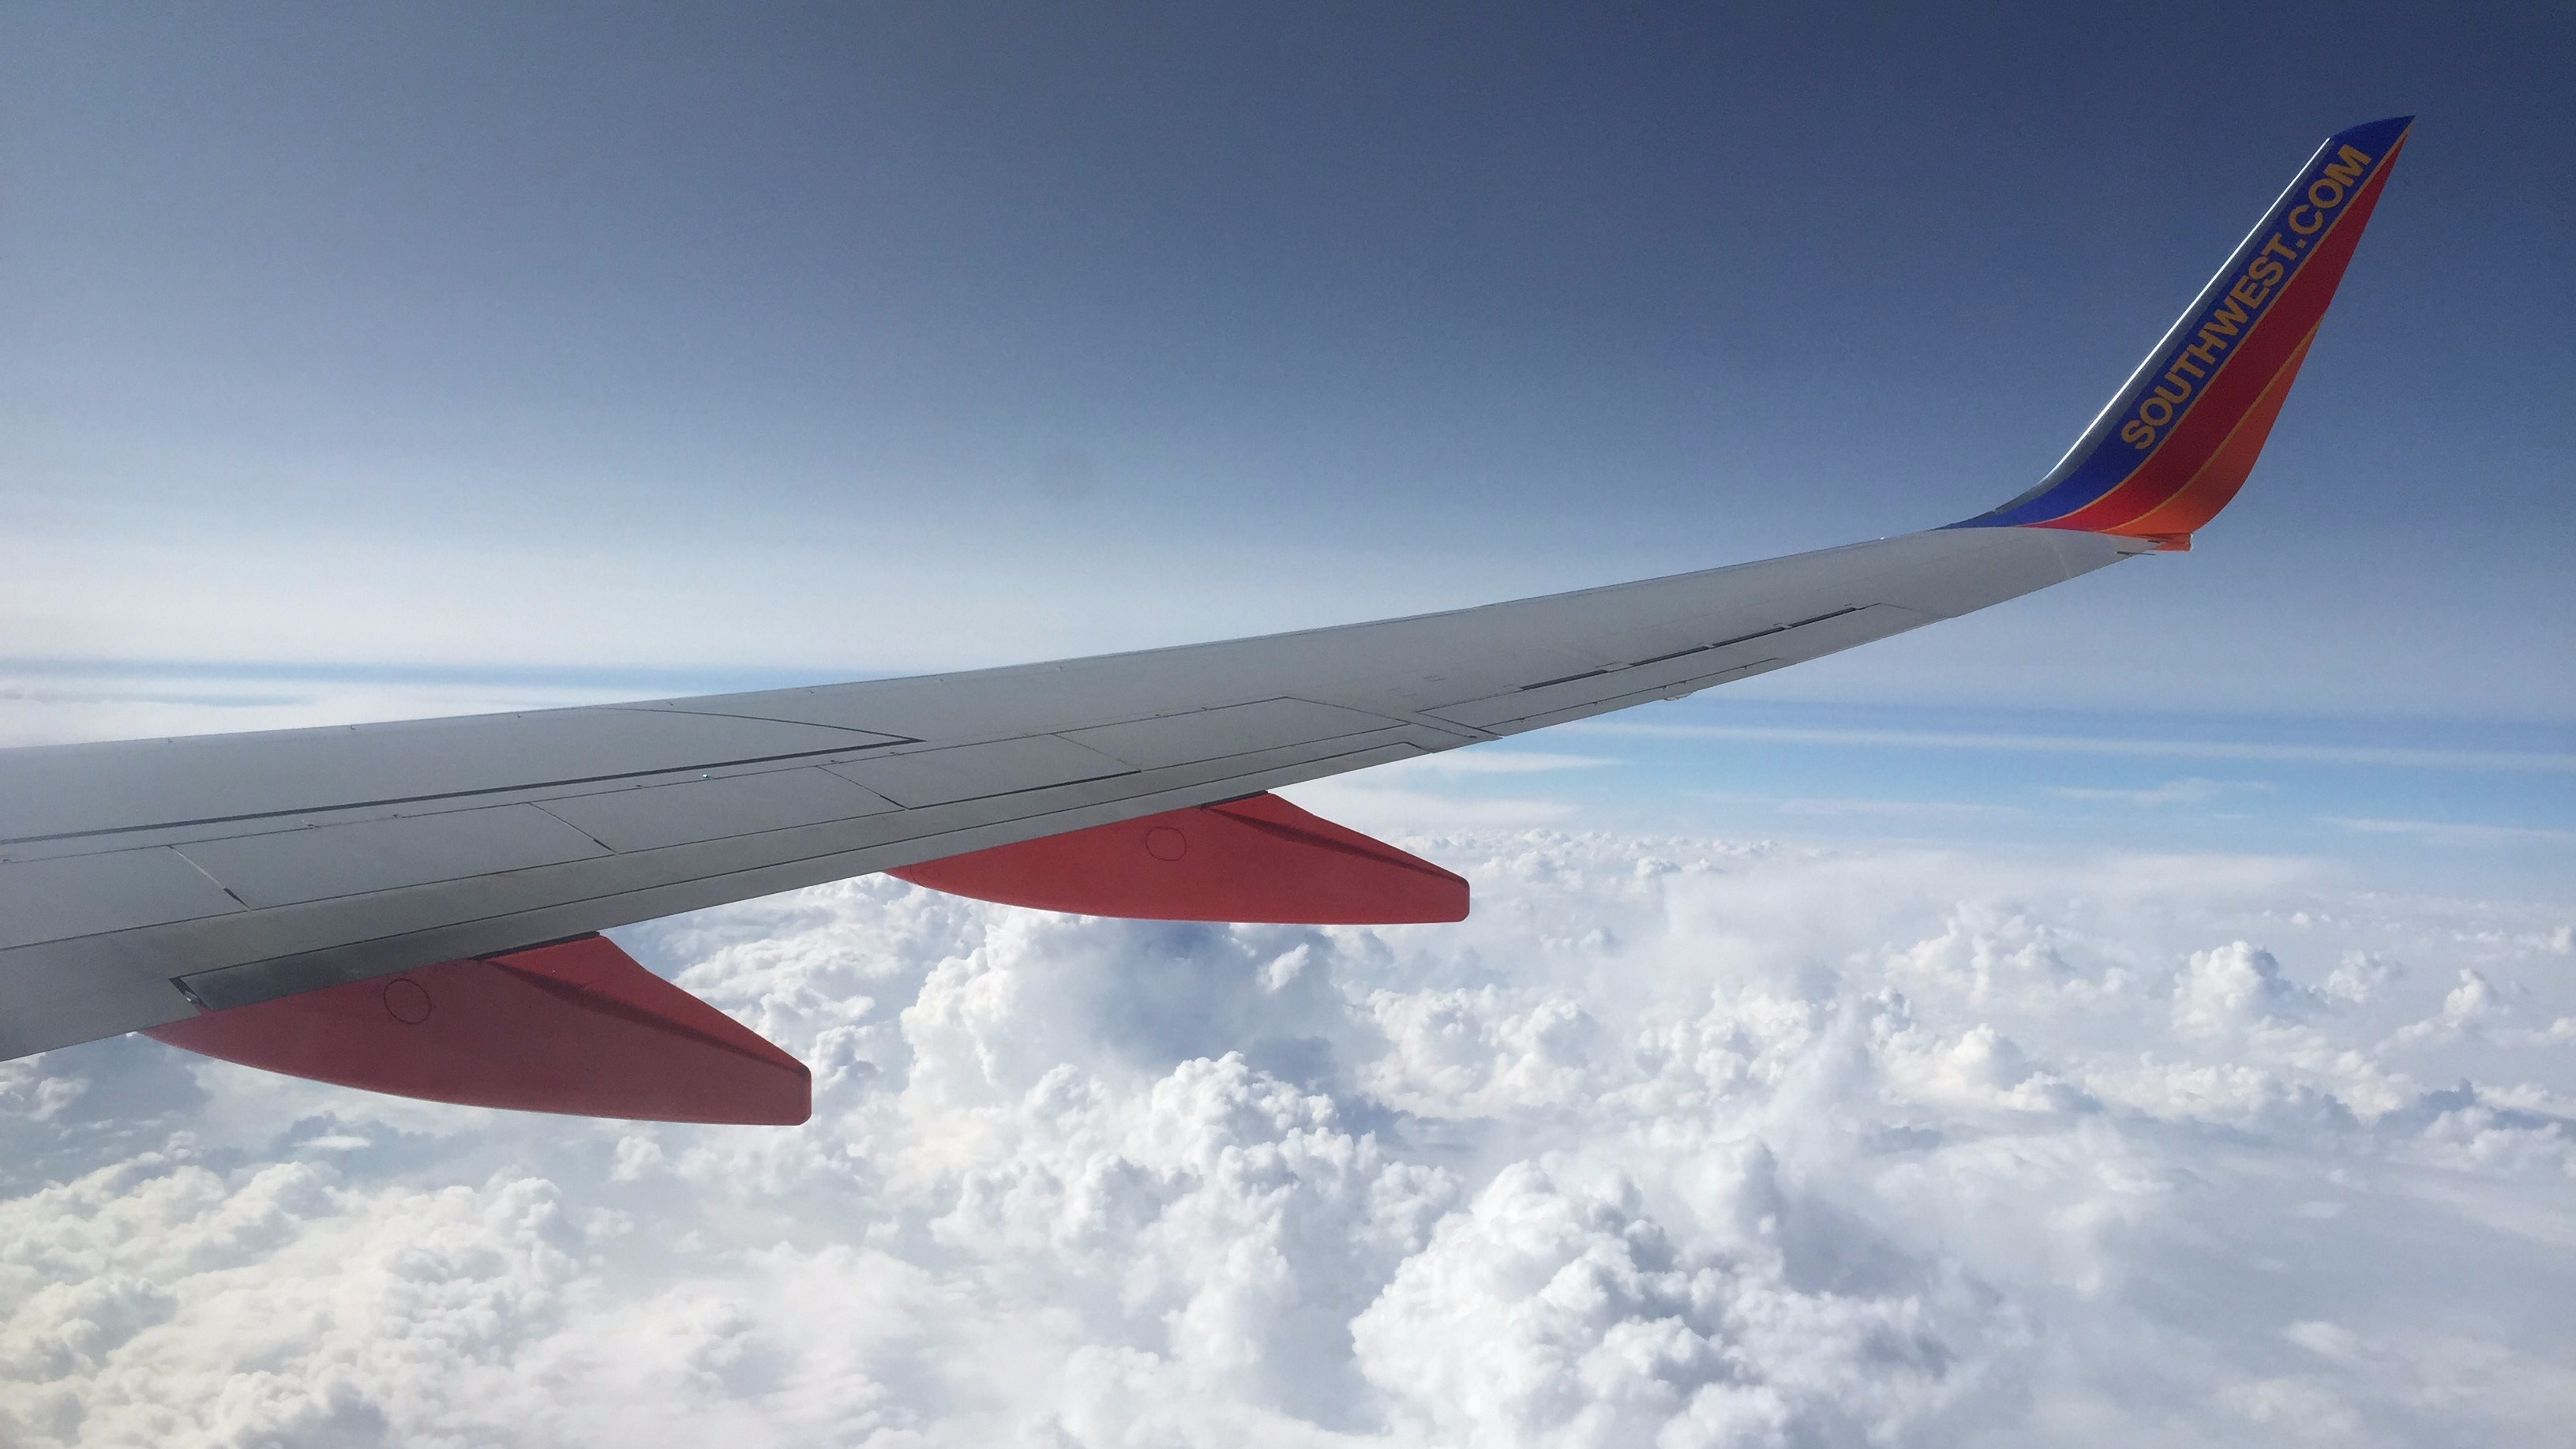 Review: Southwest Airlines 737-800 Economy Milwaukee to Las Vegas